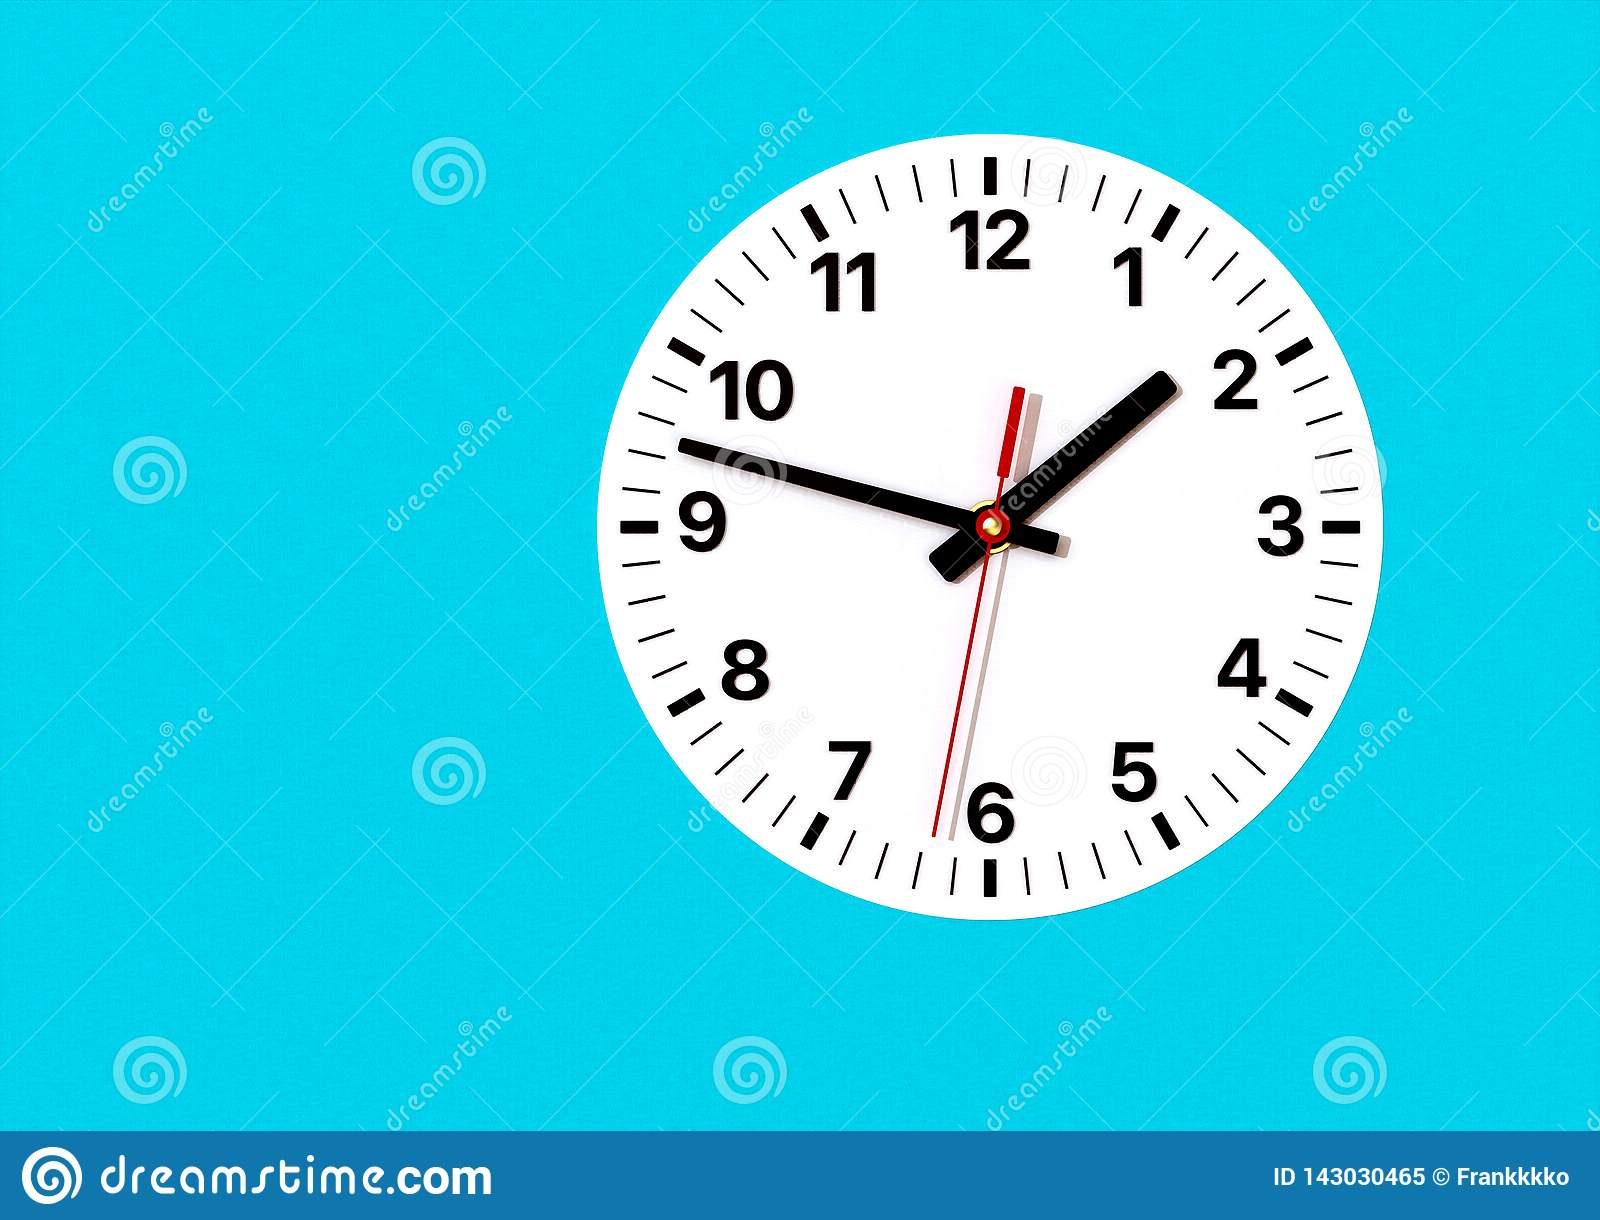 Analog clock on wall, with hour, minute and second hands